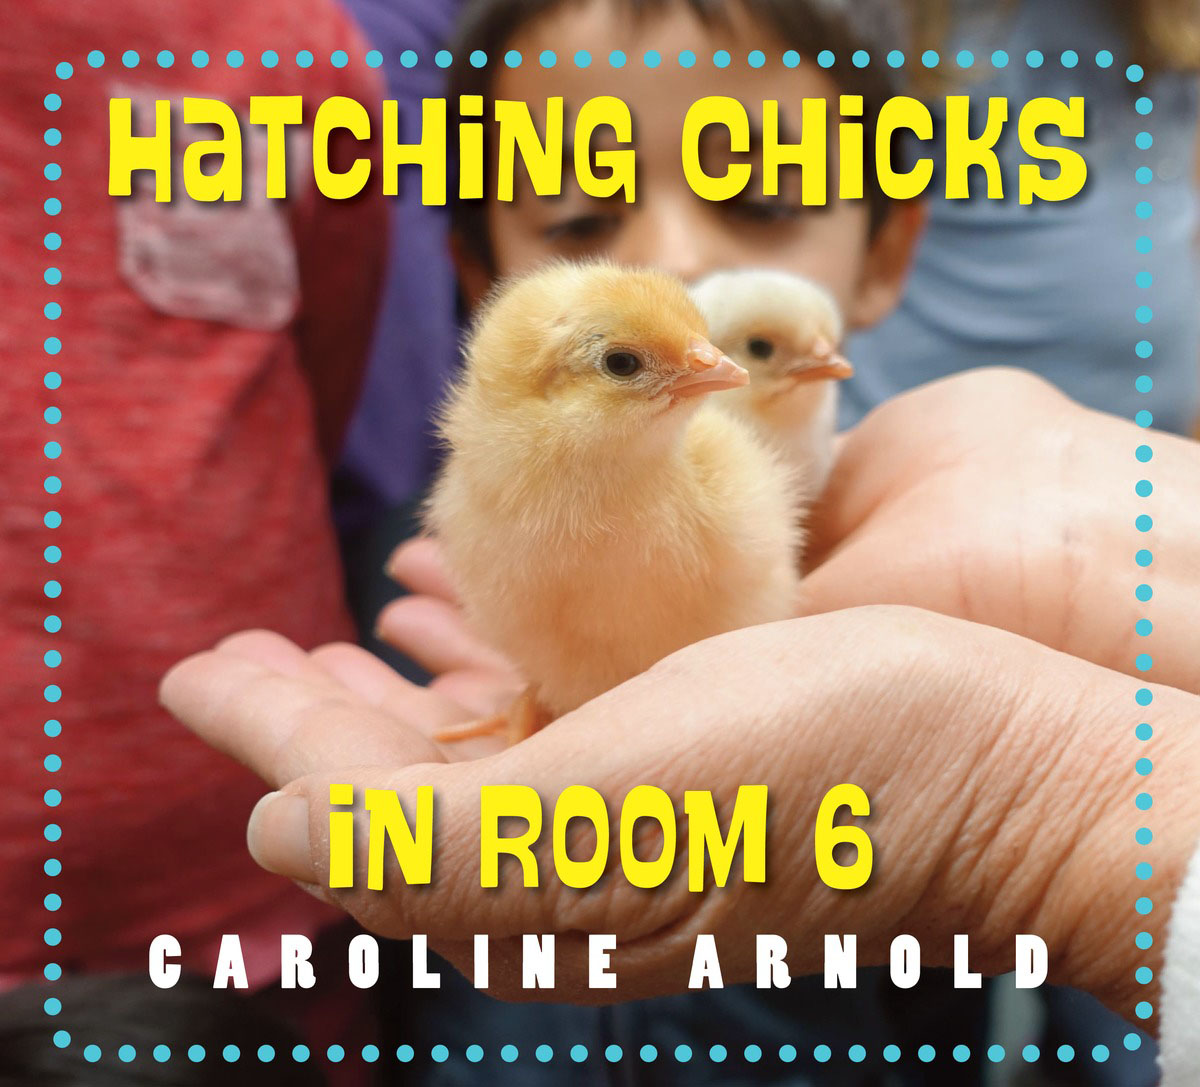 Hatching Chicks in Room 6 seeing things as they are